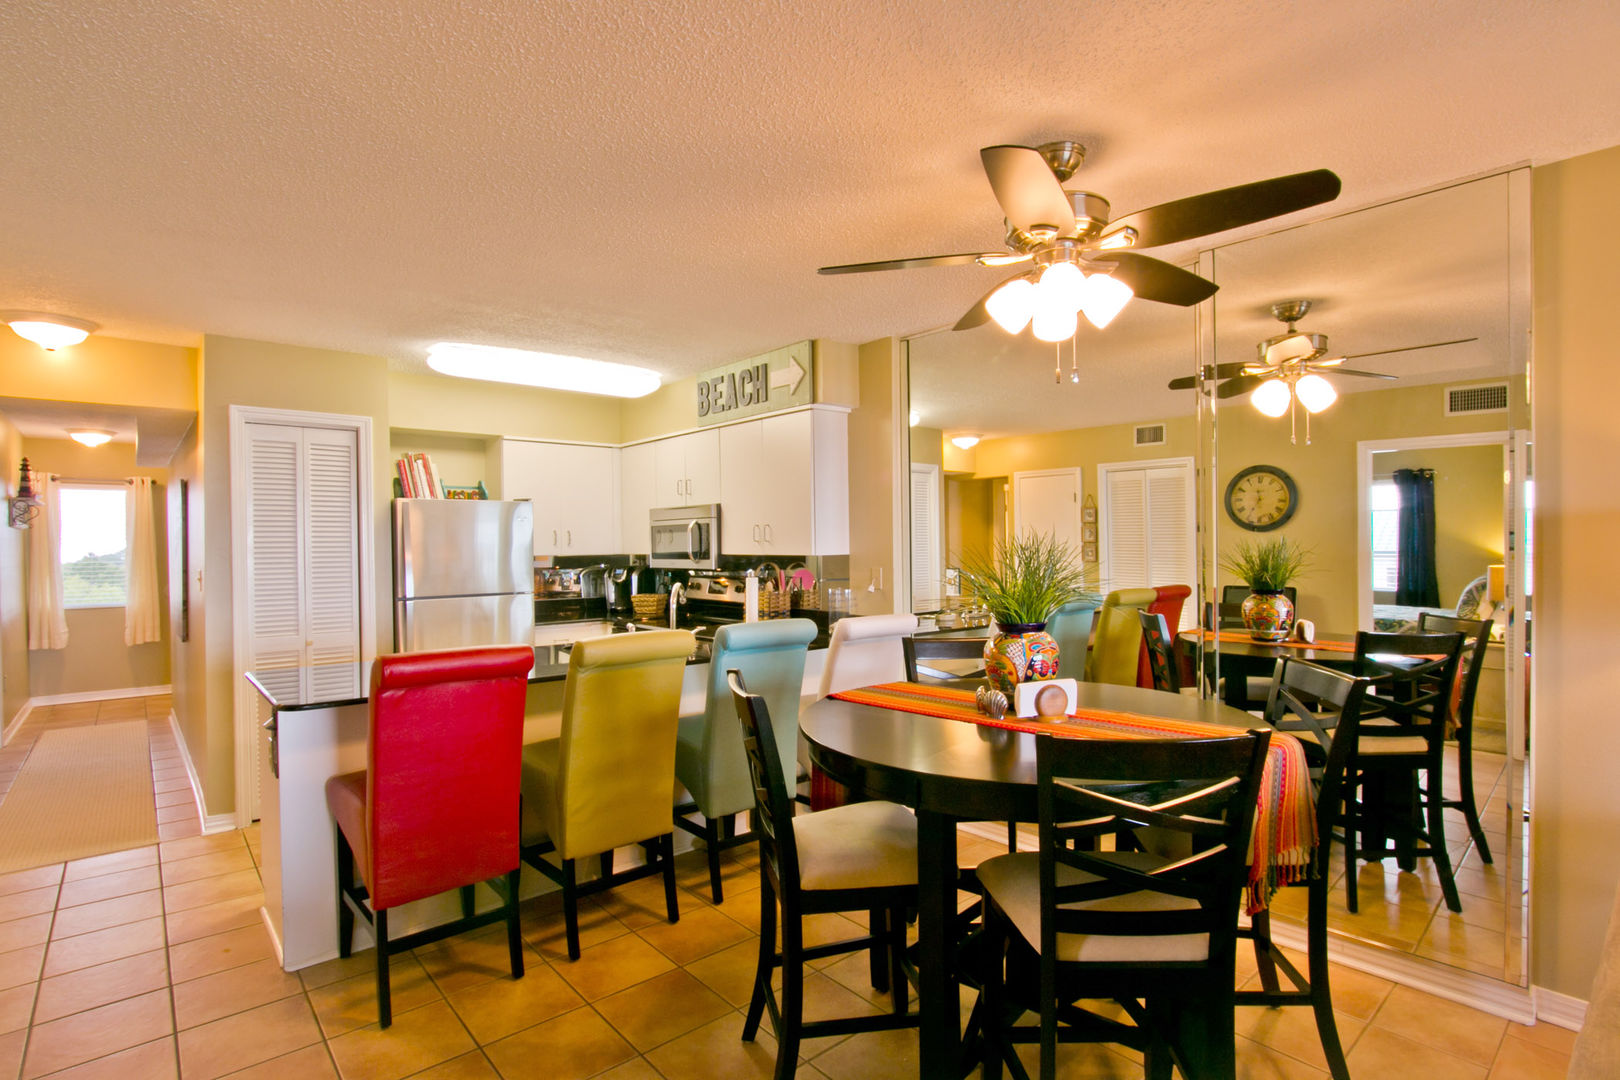 Dining Area and Kitchen with Bar Seating for four